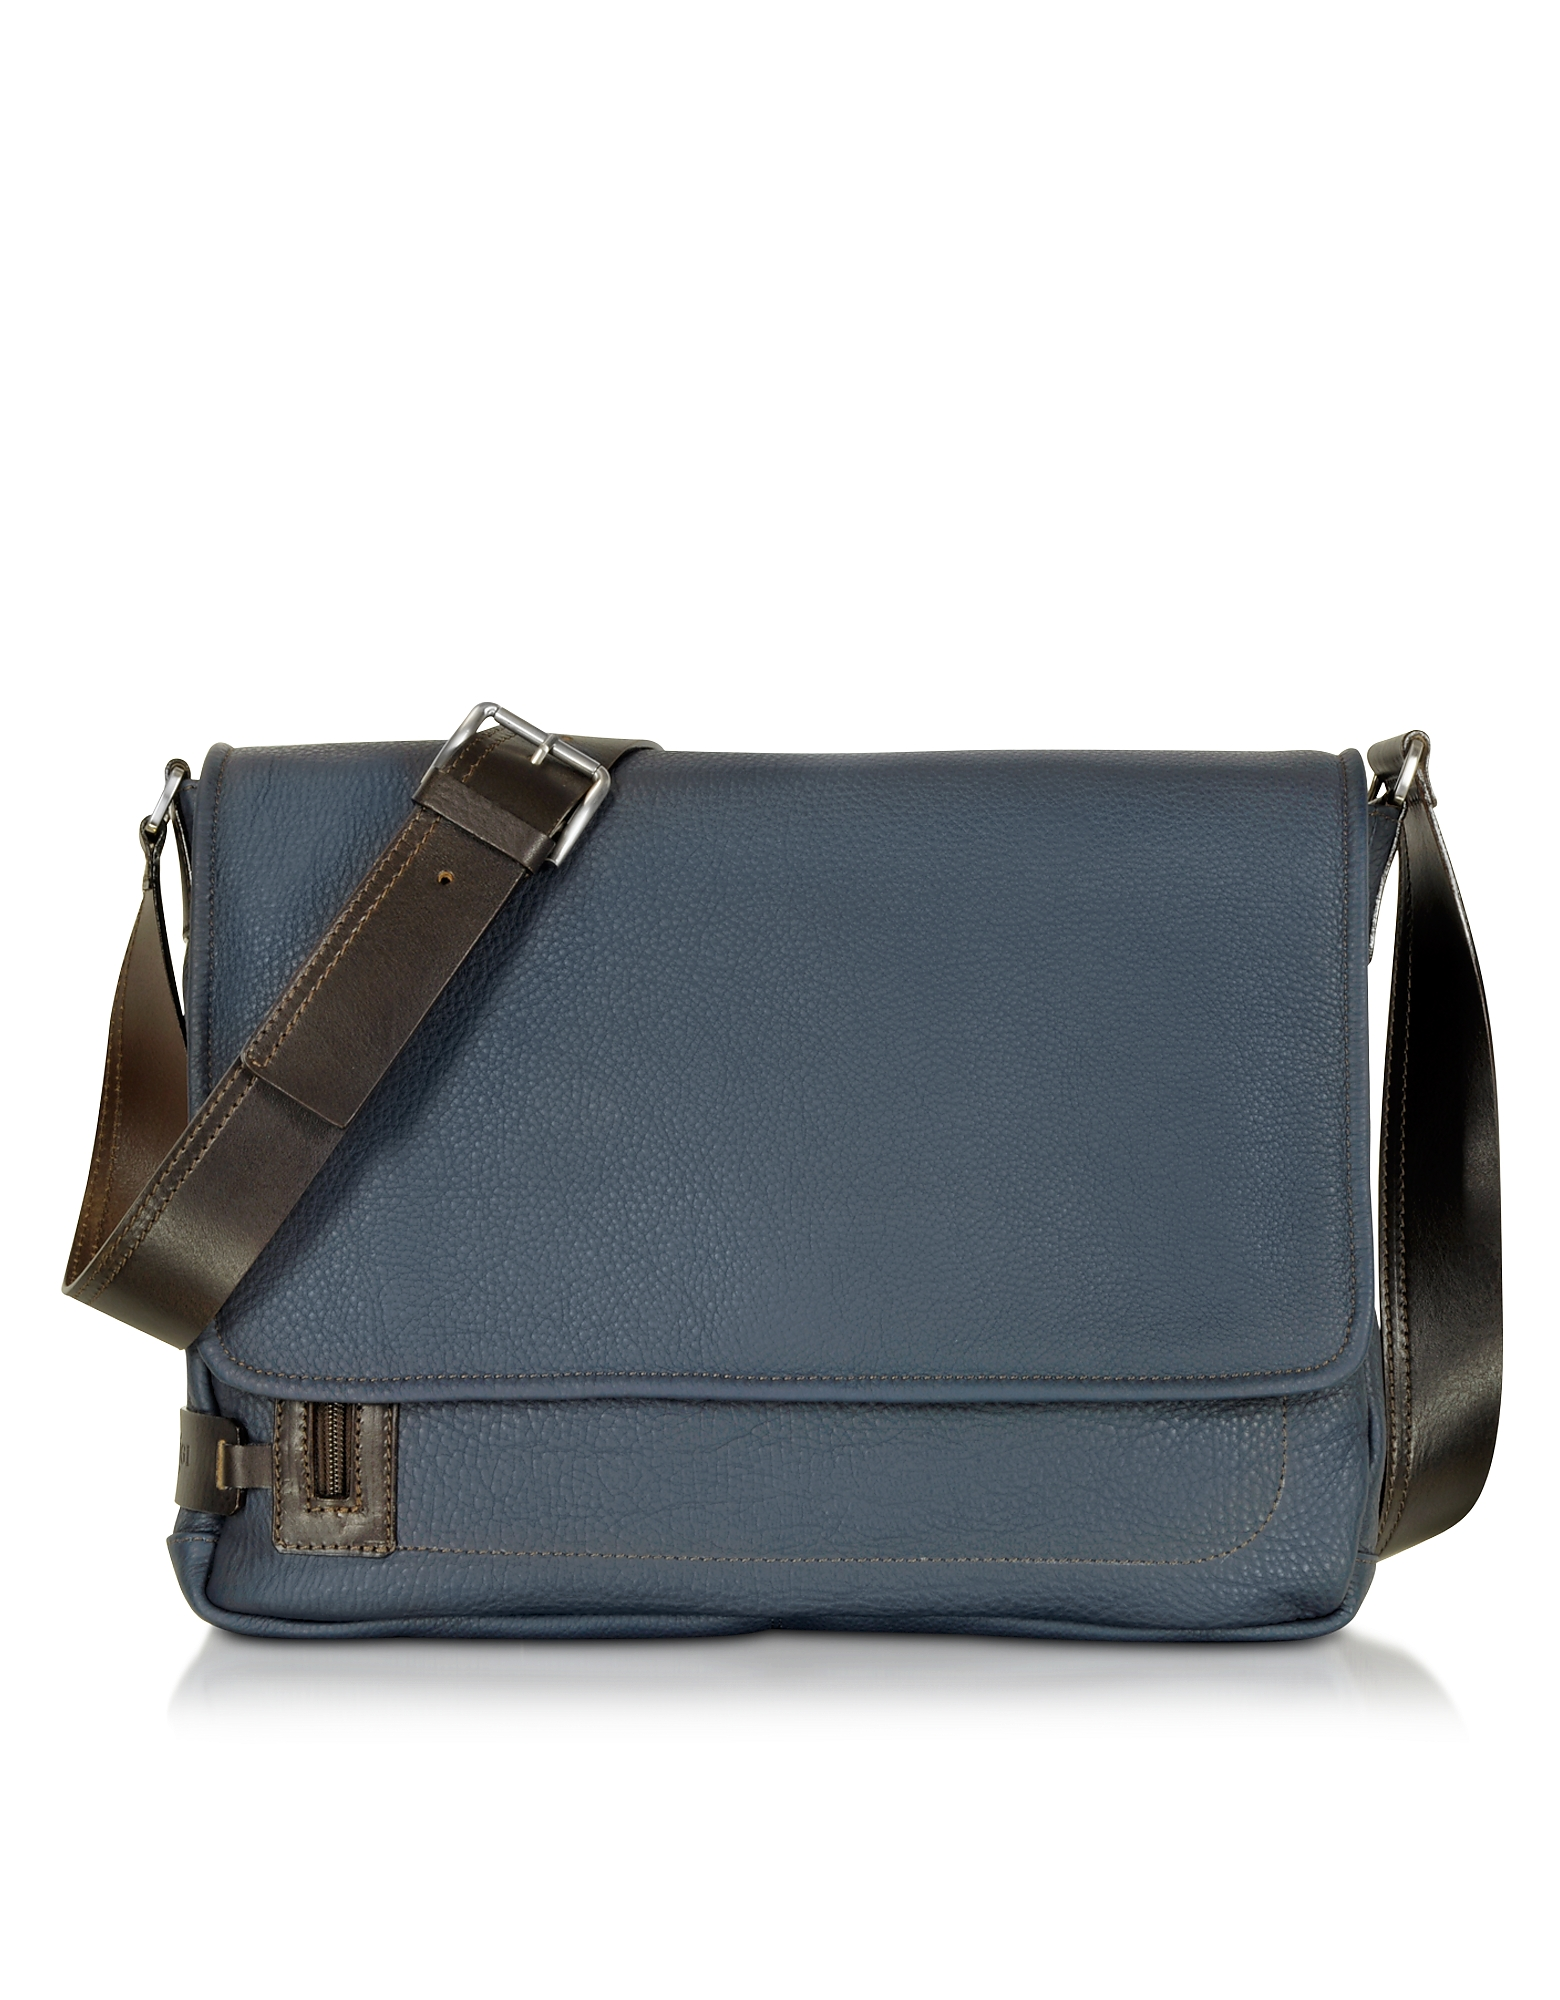 Chiarugi Briefcases, Midnight Blue Leather Messenger